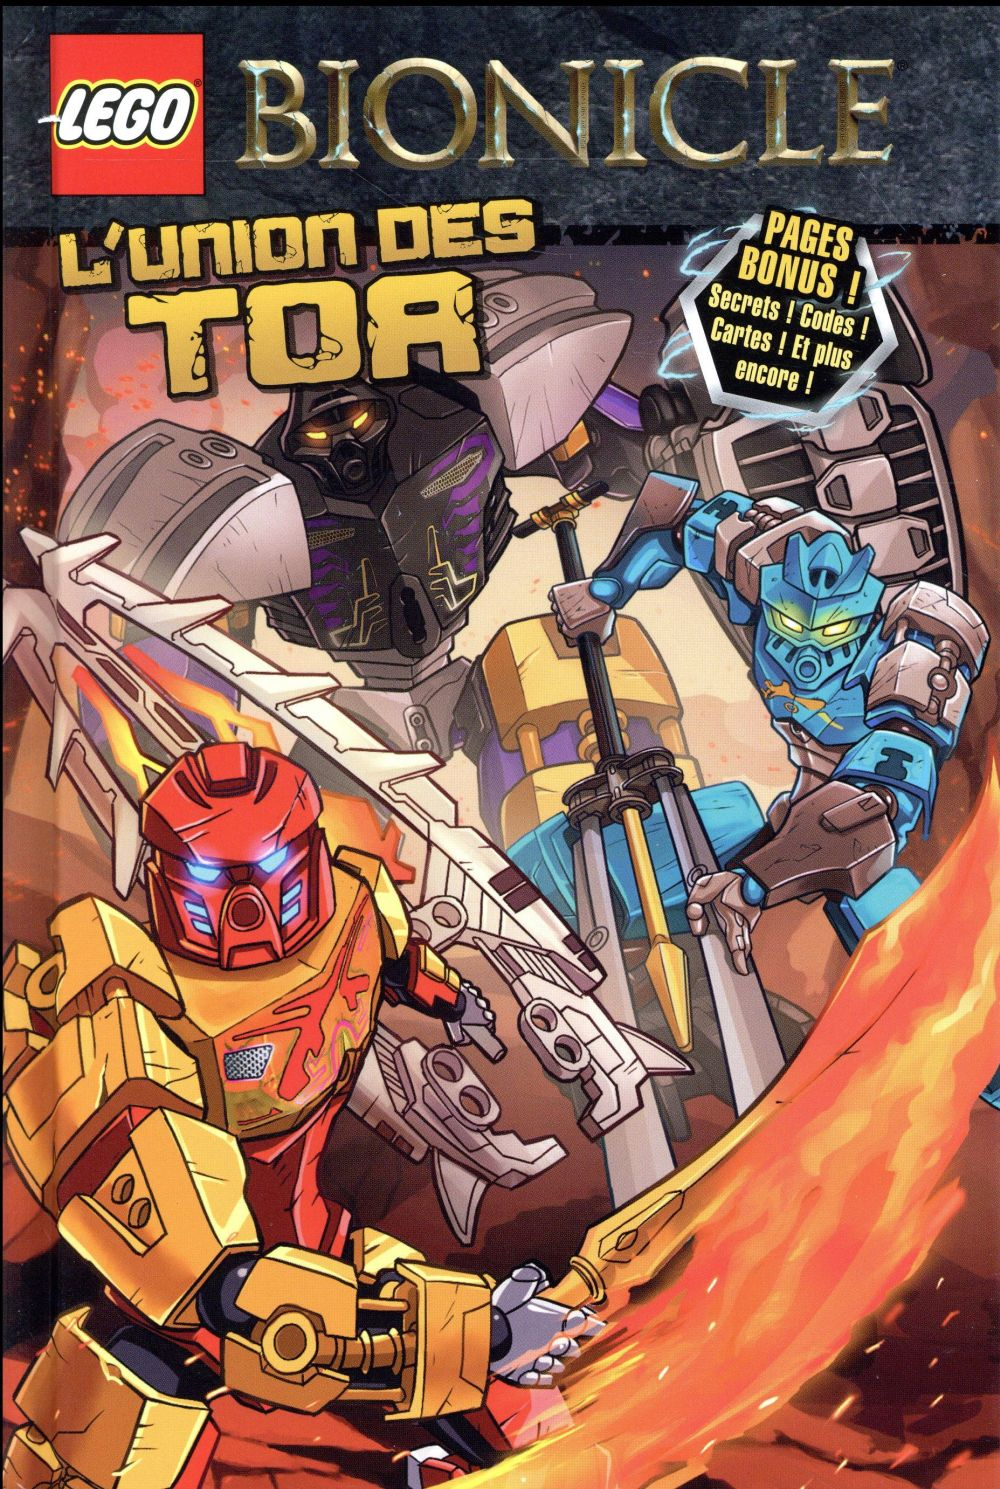 Couverture Lego - Bionicle tome 1 - L'union des Tor